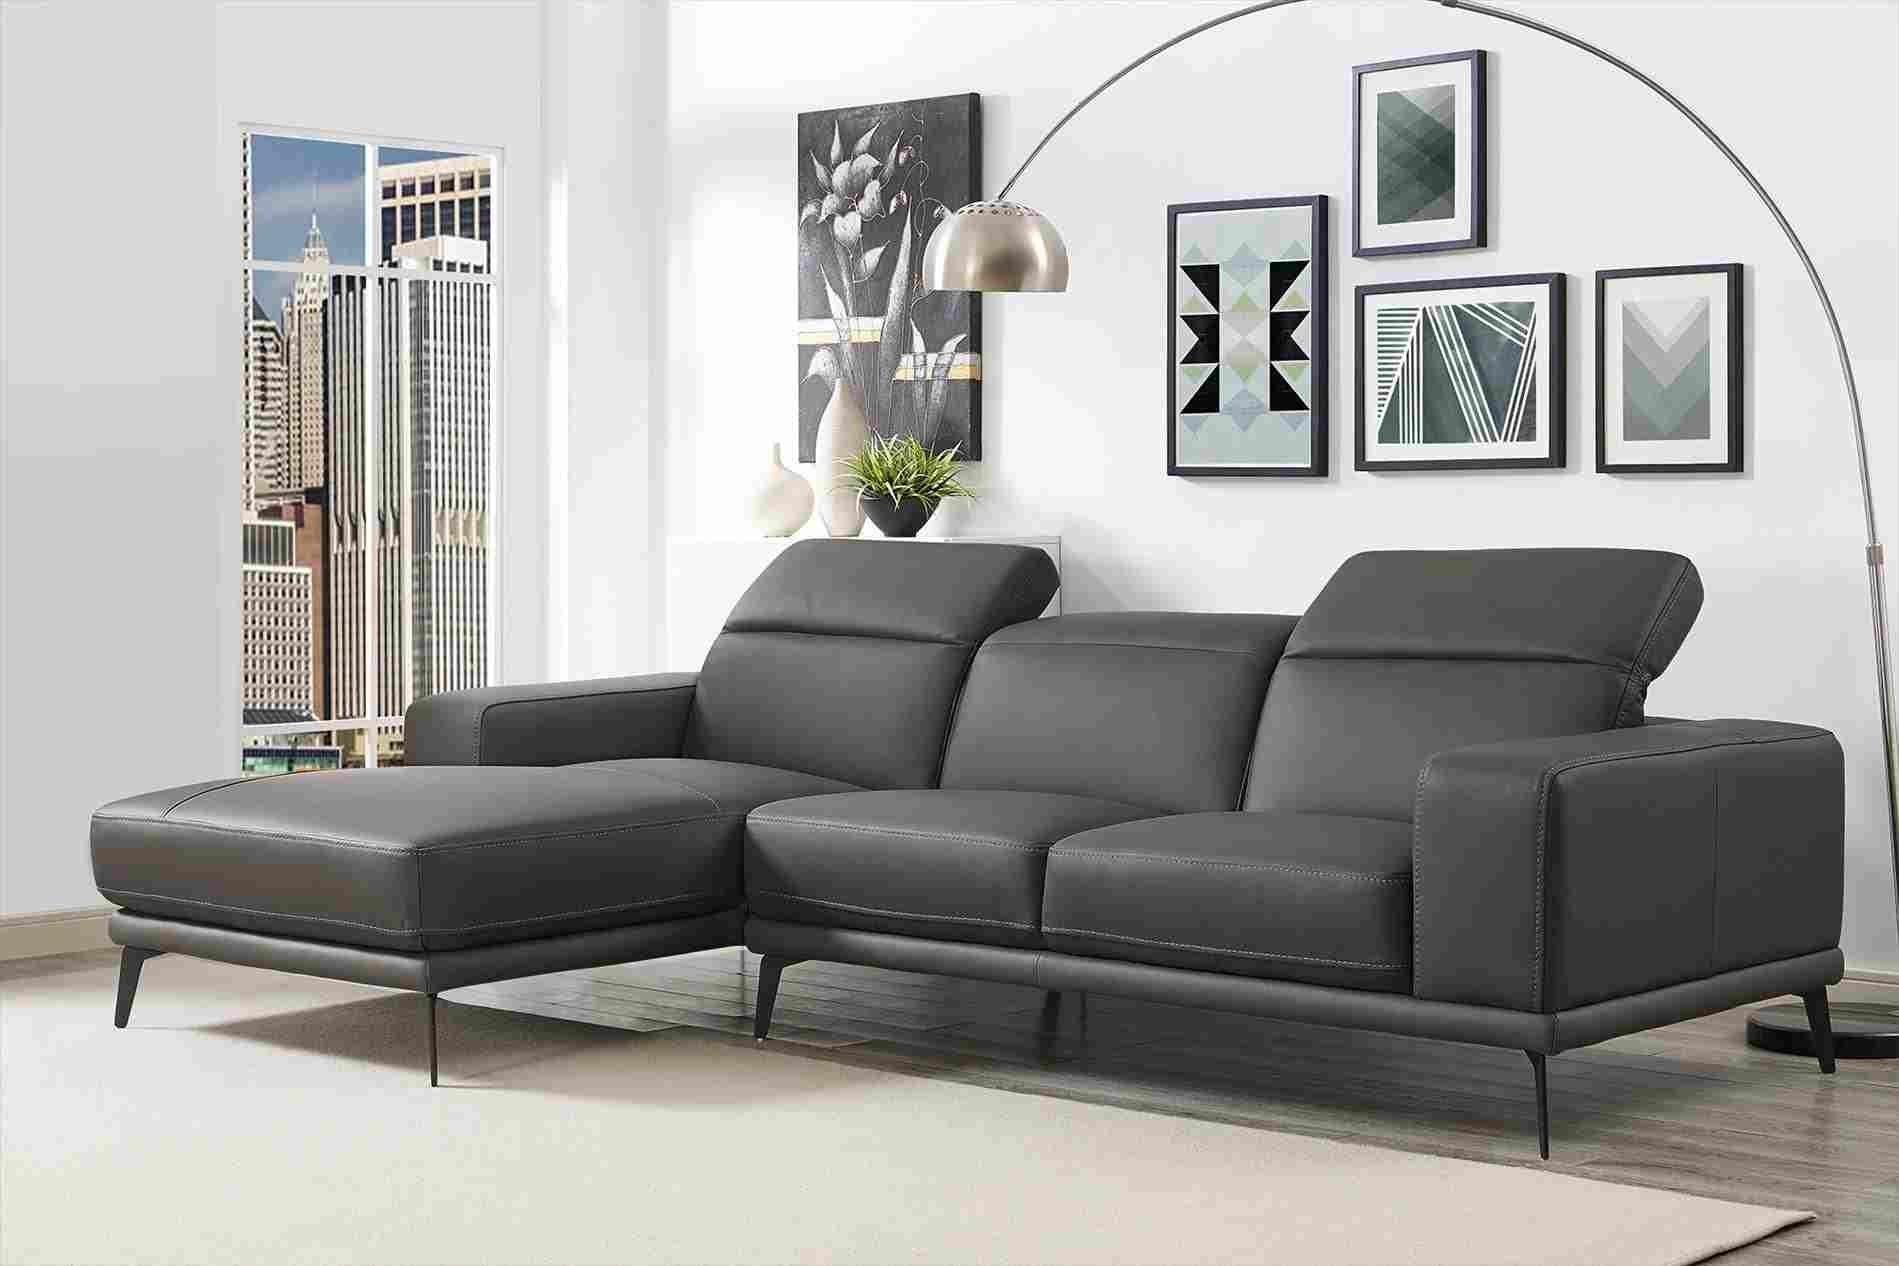 Cincinnatitaxi | Within Cosmos Grey 2 Piece Sectionals With Raf Chaise (Image 4 of 25)